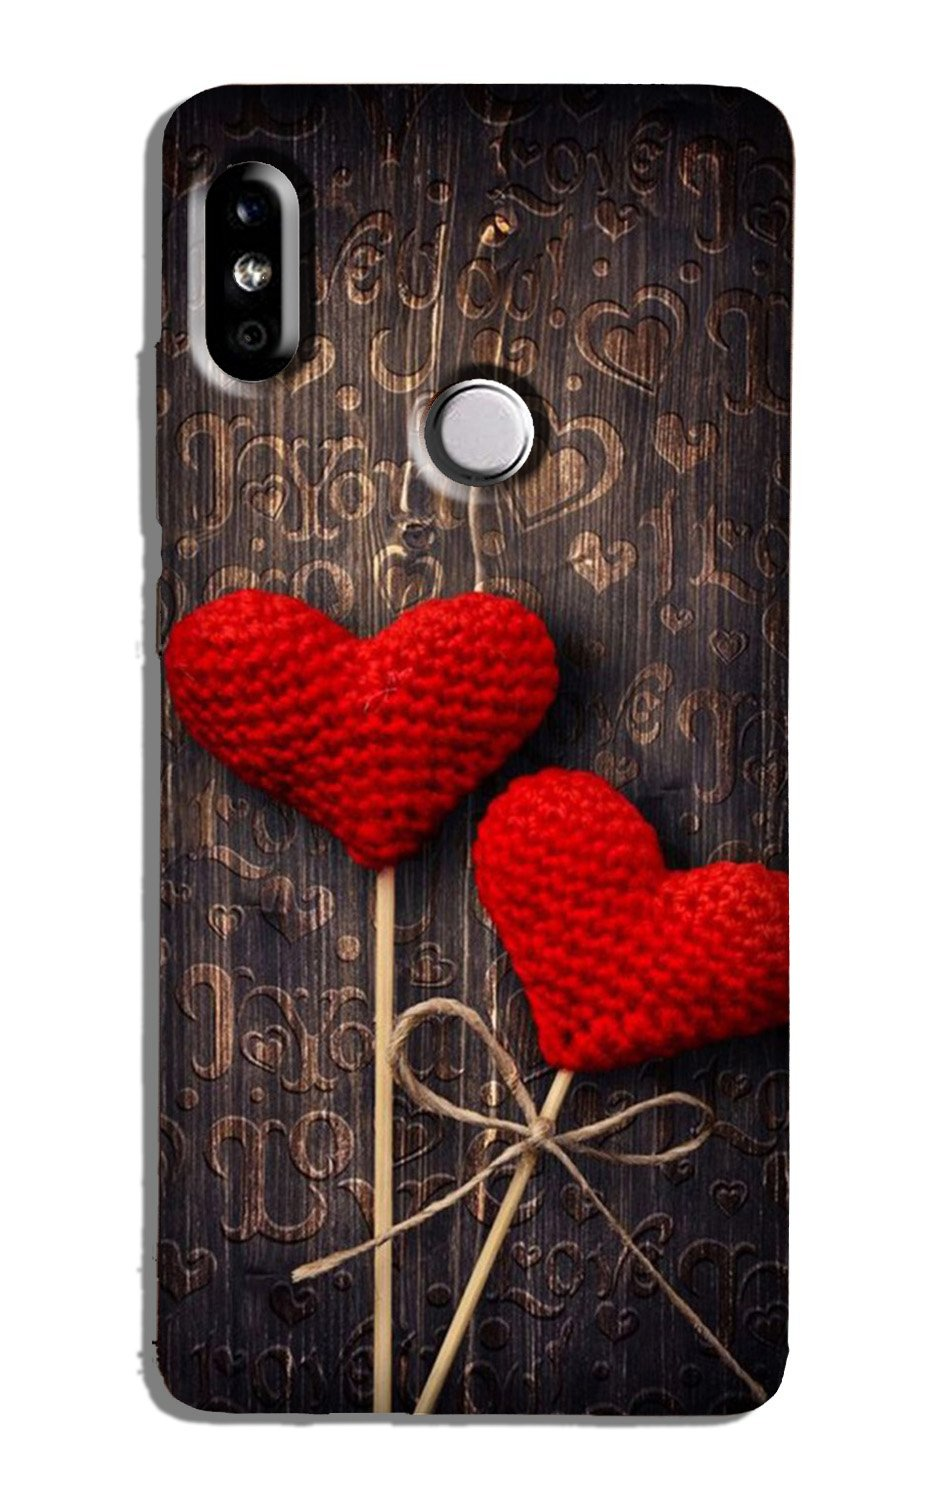 Red Hearts Case for Redmi Note 5 Pro